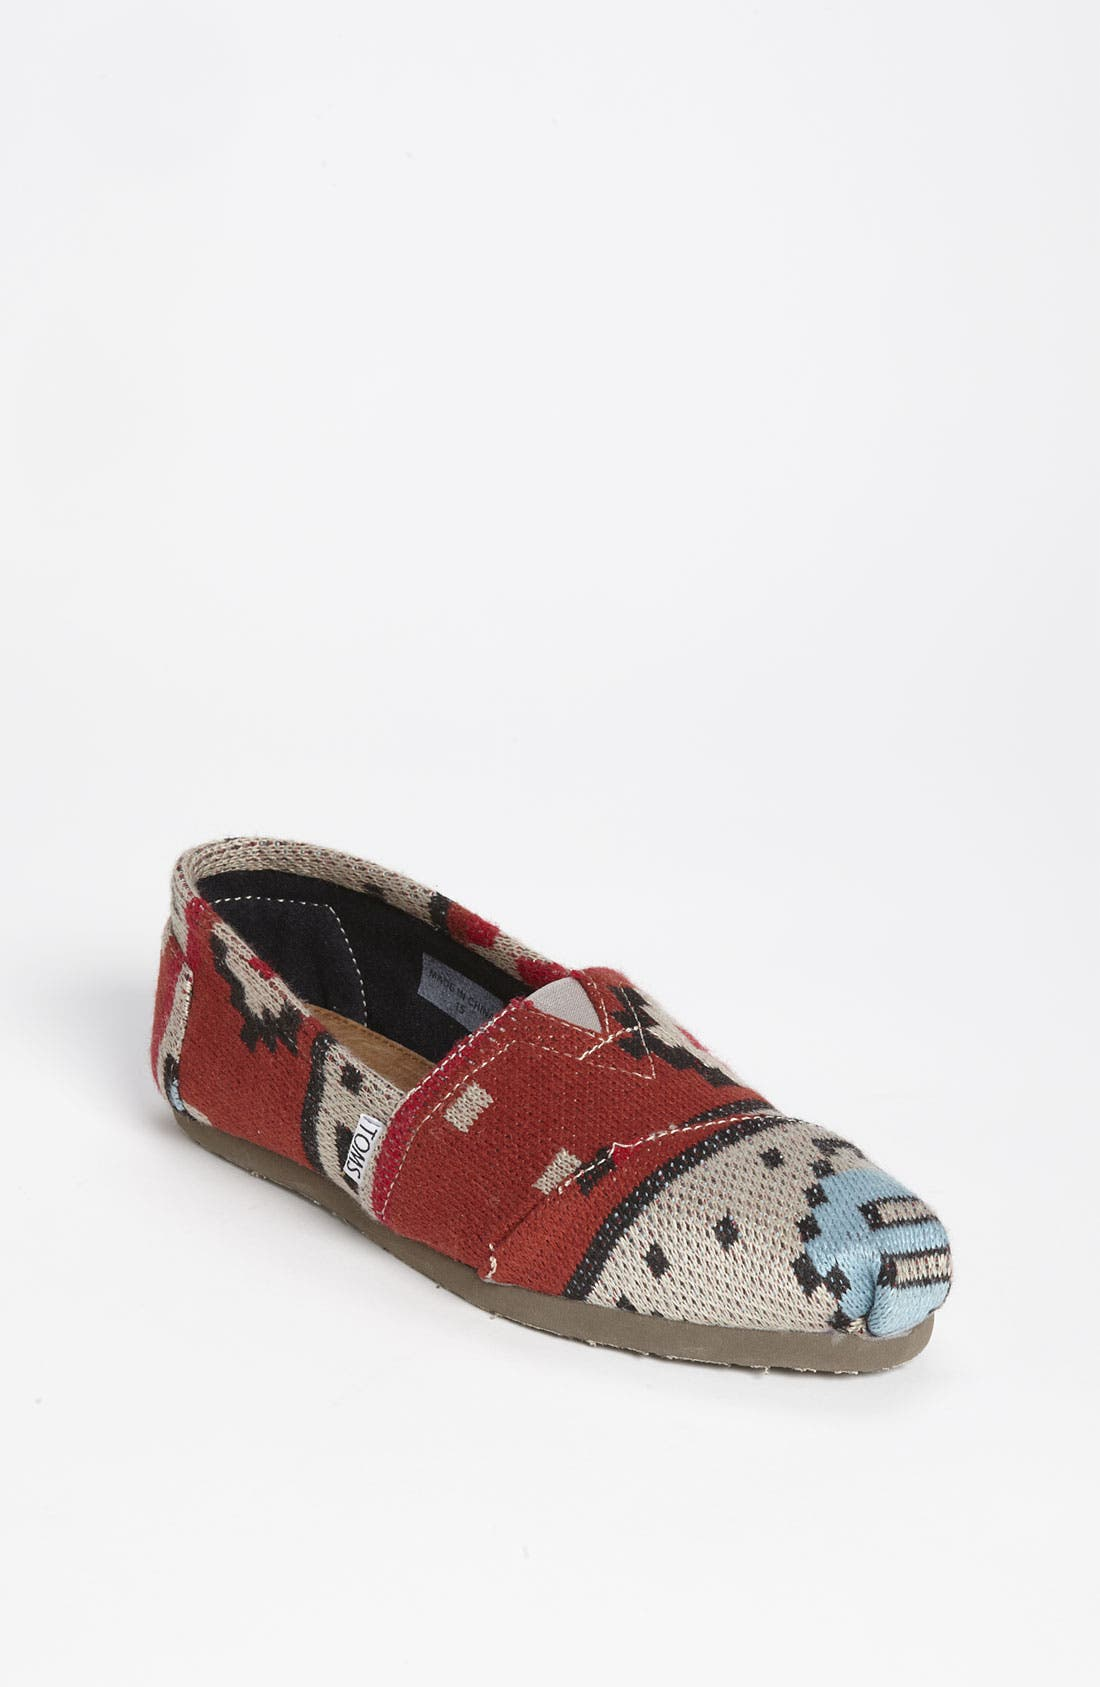 Alternate Image 1 Selected - TOMS 'Classic - Tribal' Knit Slip-On (Women)